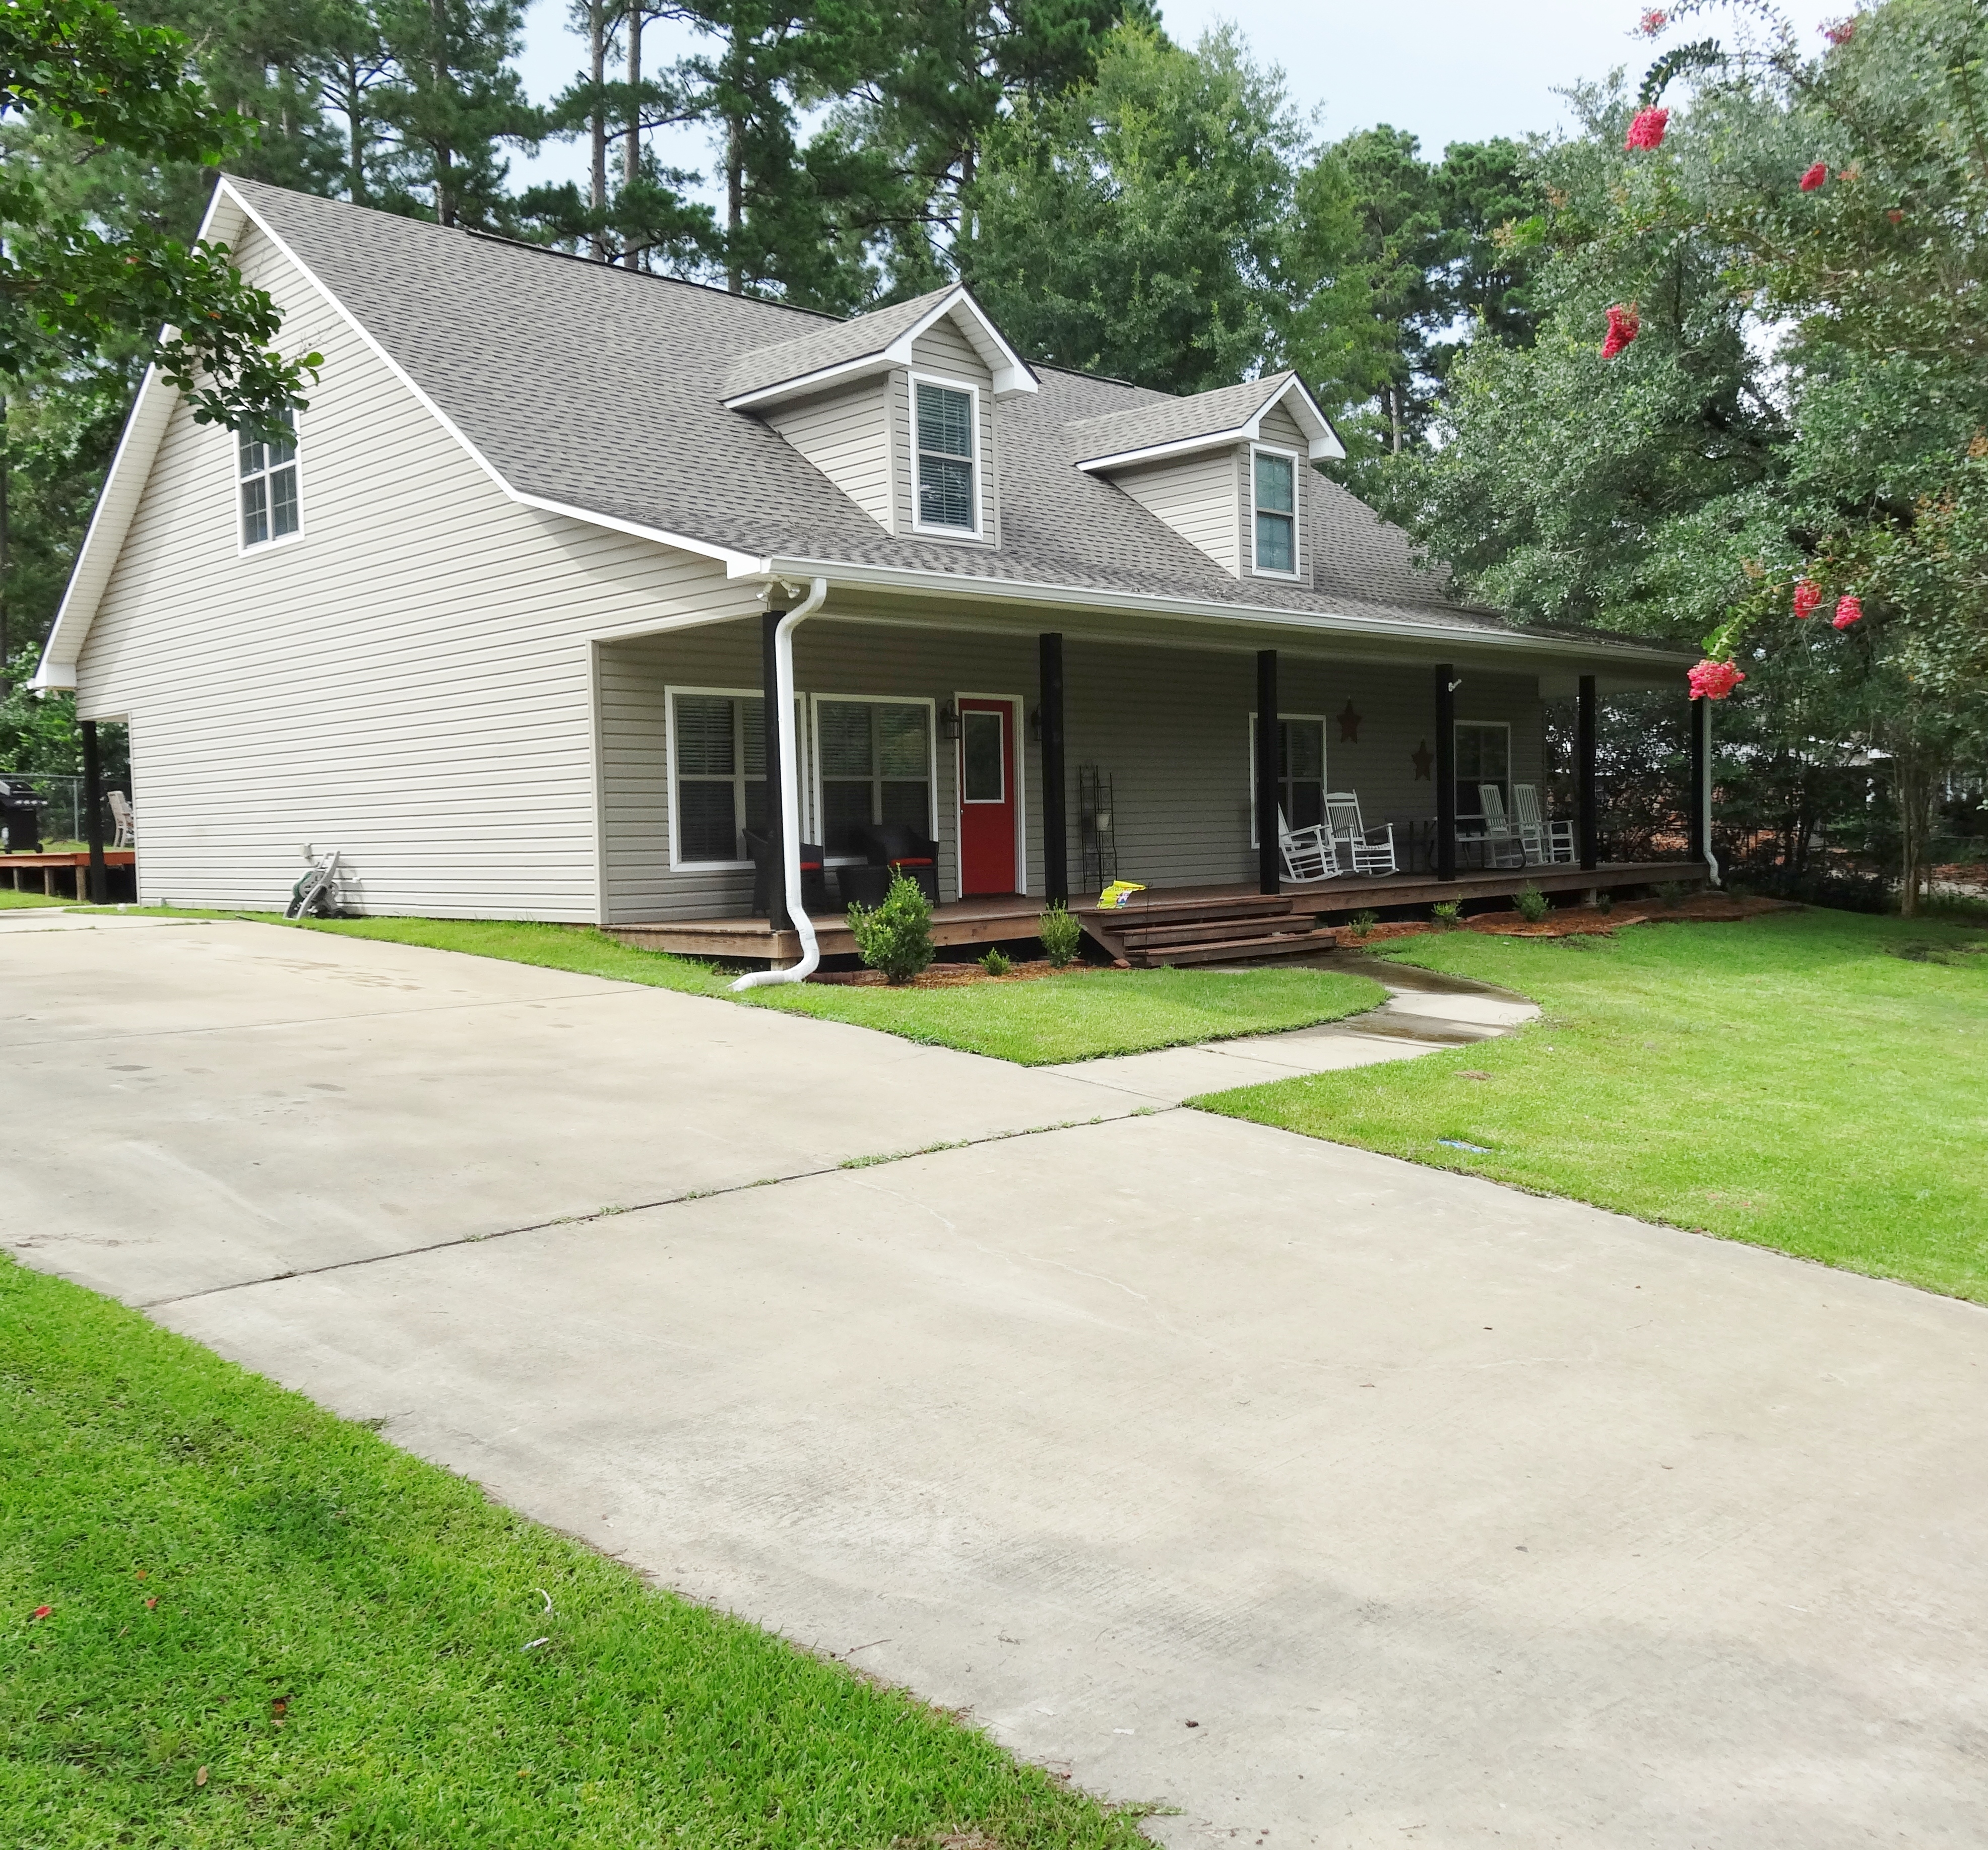 Pineville La Real Estate Homes For Sale Near Camp Beau